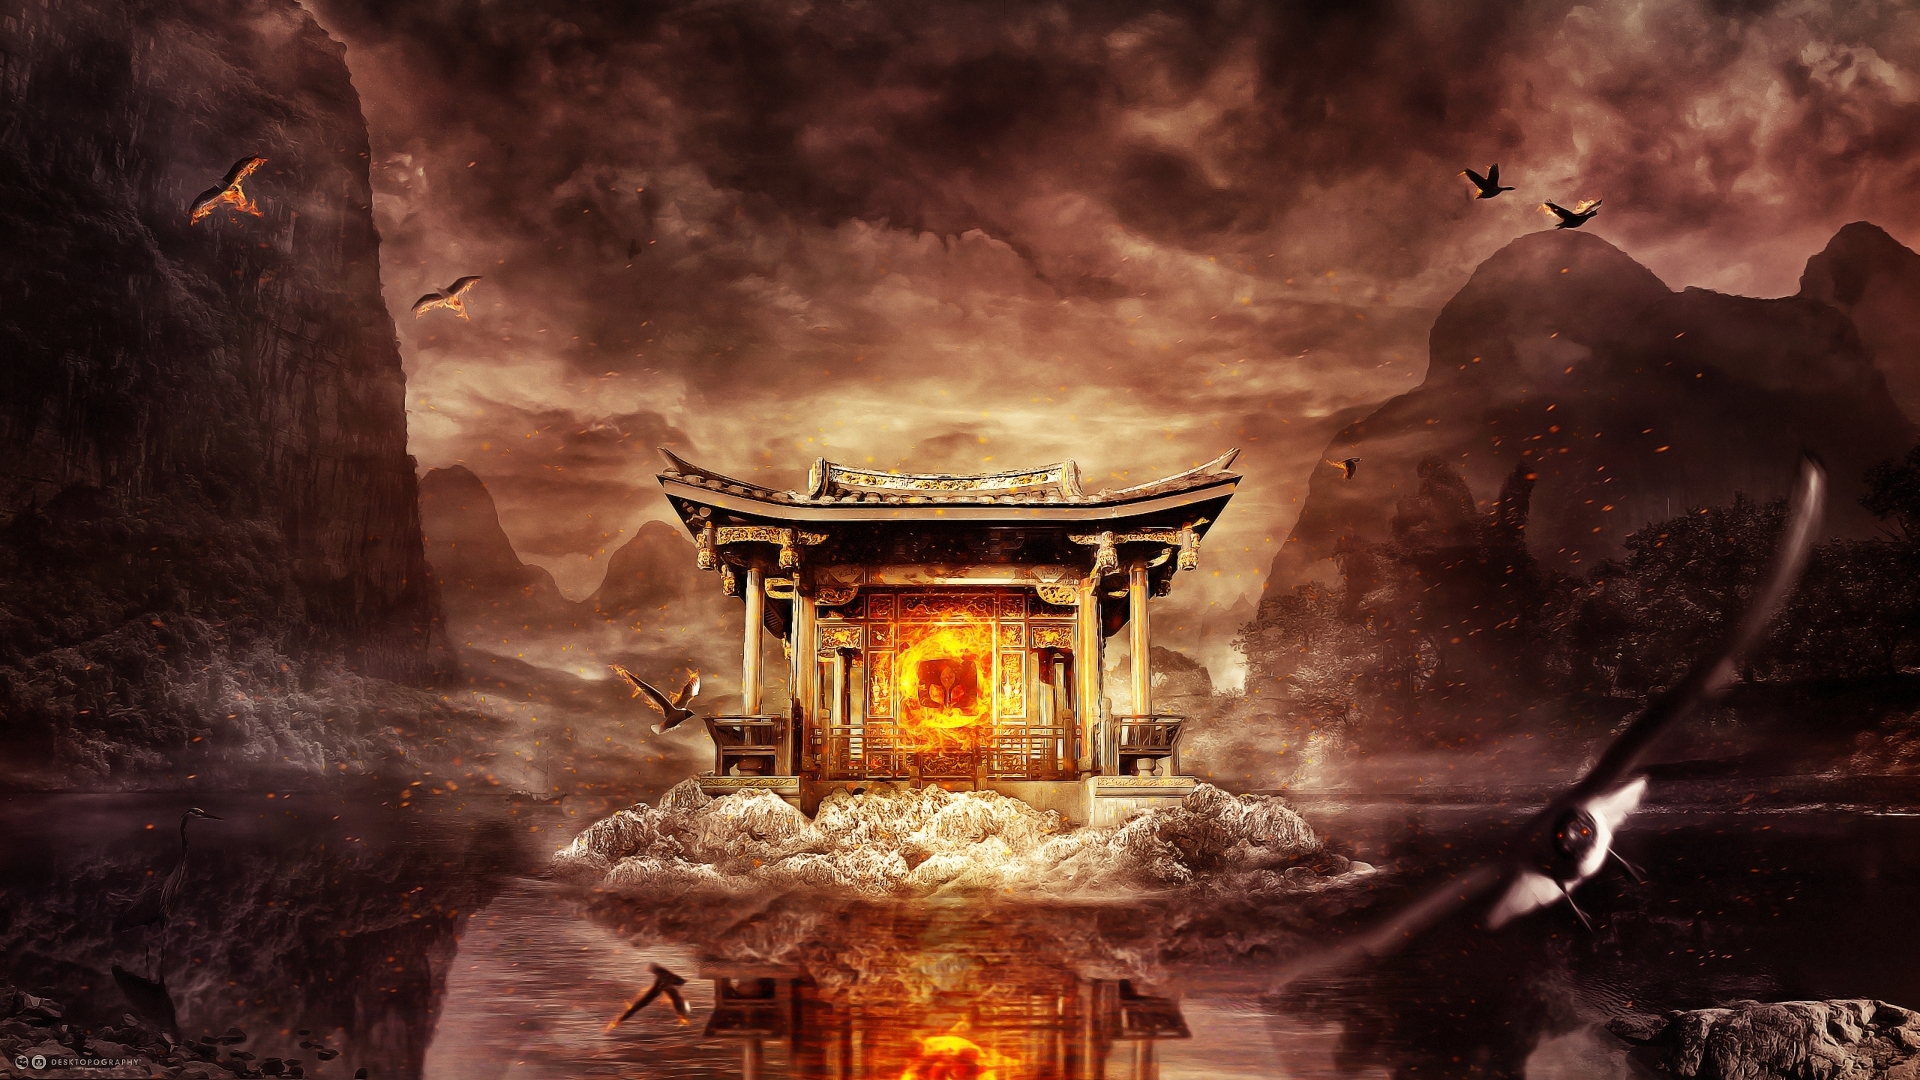 24050 download wallpaper Landscape, Houses, Fantasy, Mountains, Fire, Lakes screensavers and pictures for free